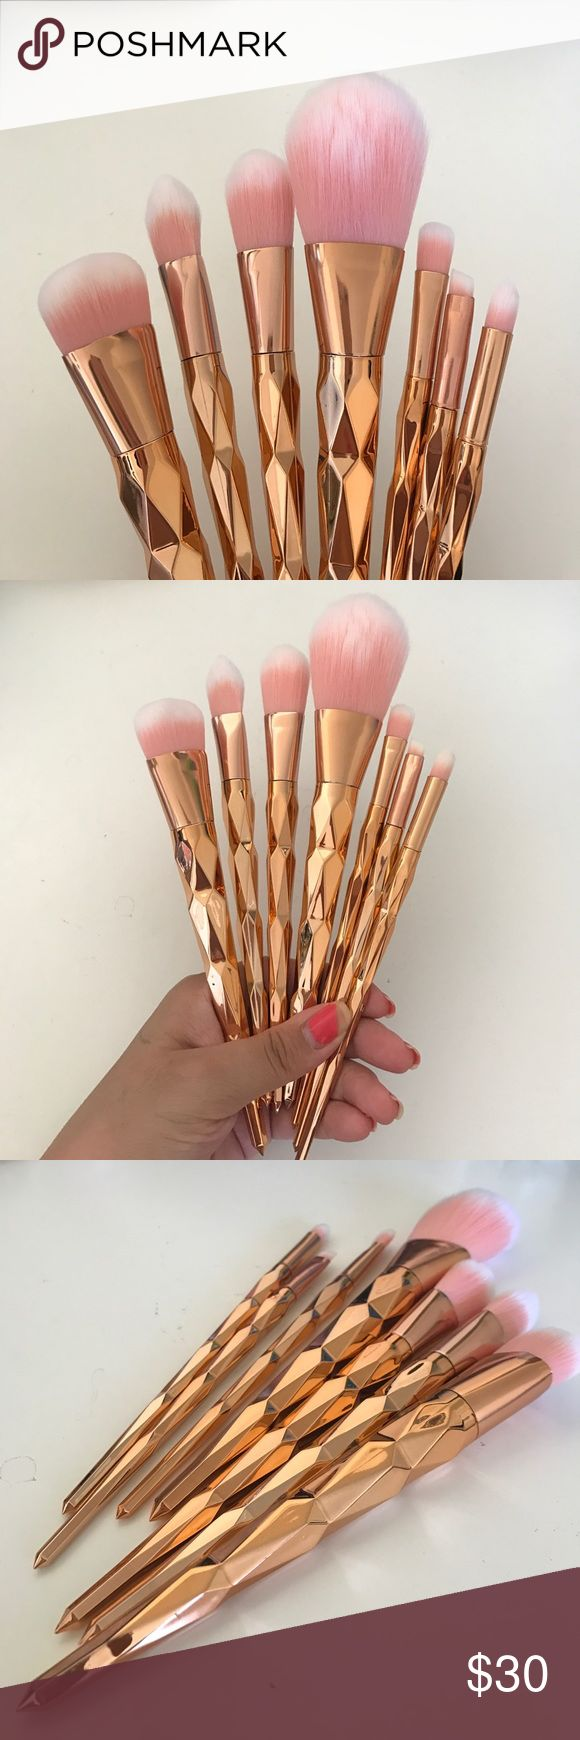 FLASH SALE7 piece unicorn makeup brushes Super soft unicorn horn makeup brush. They are super cute must have everyday brushes!  they are unbranded. Tarte for exposure. They are brand new and still in their packaging. I just took them out for pictures. THIS IS MY LAST SET IN THIS COLOR tarte Makeup Brushes & Tools